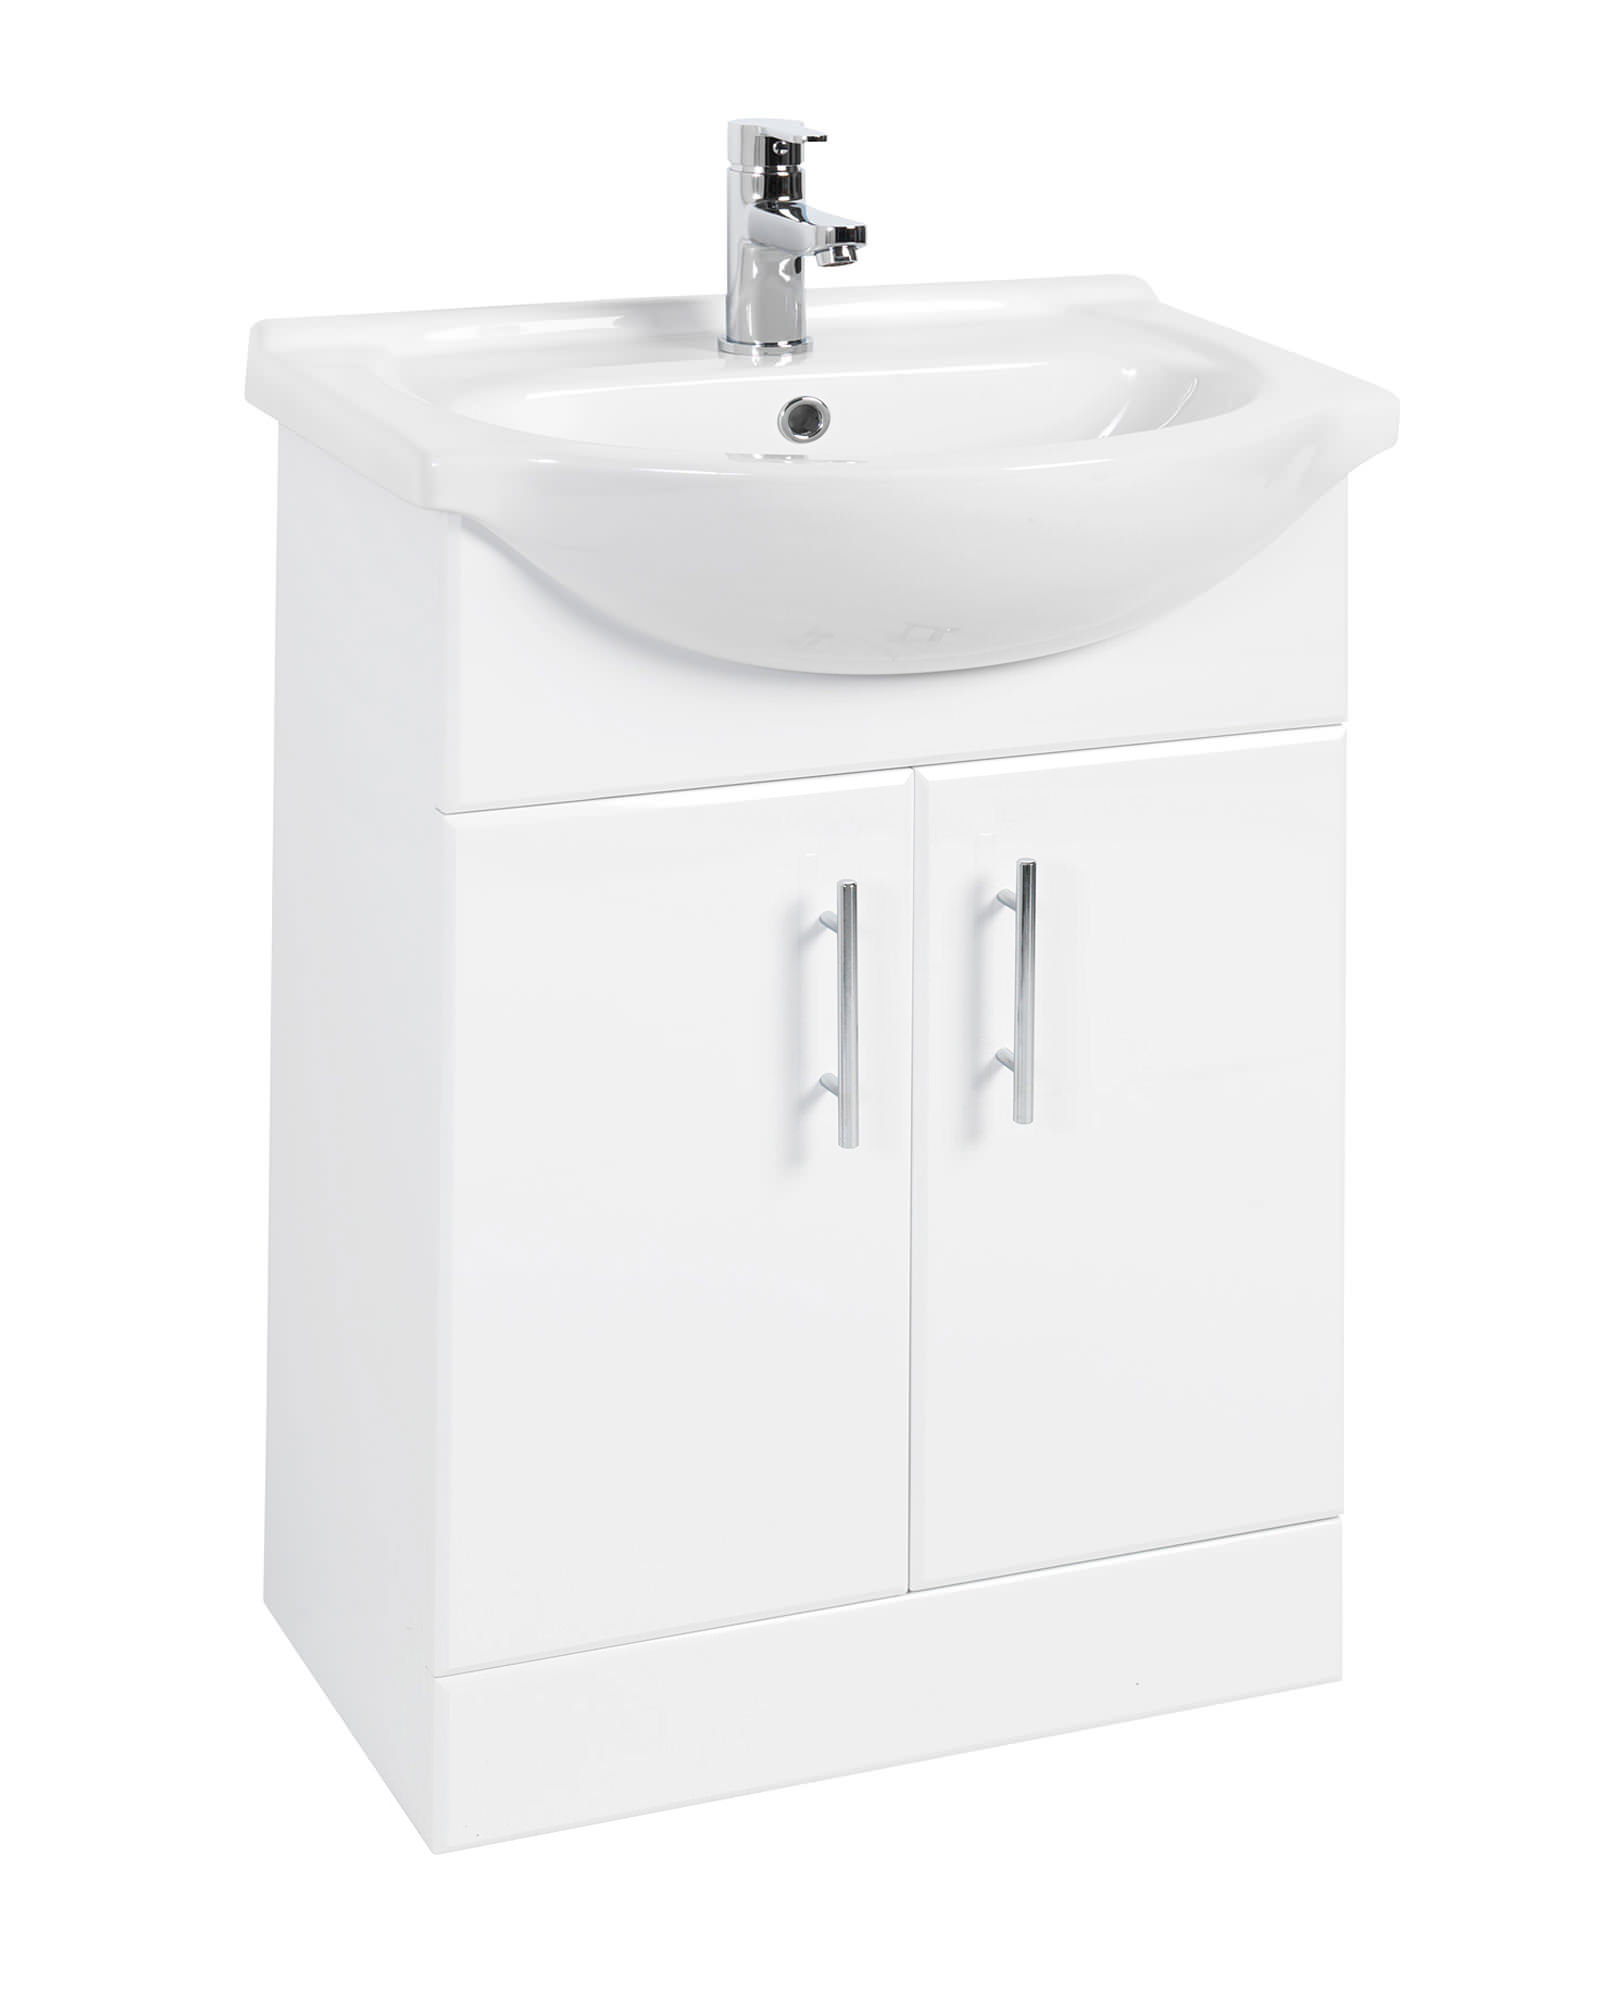 bathroom sink vanity units. BEO 1649 Floor Standing Bathroom Vanity Units  With Without Basins